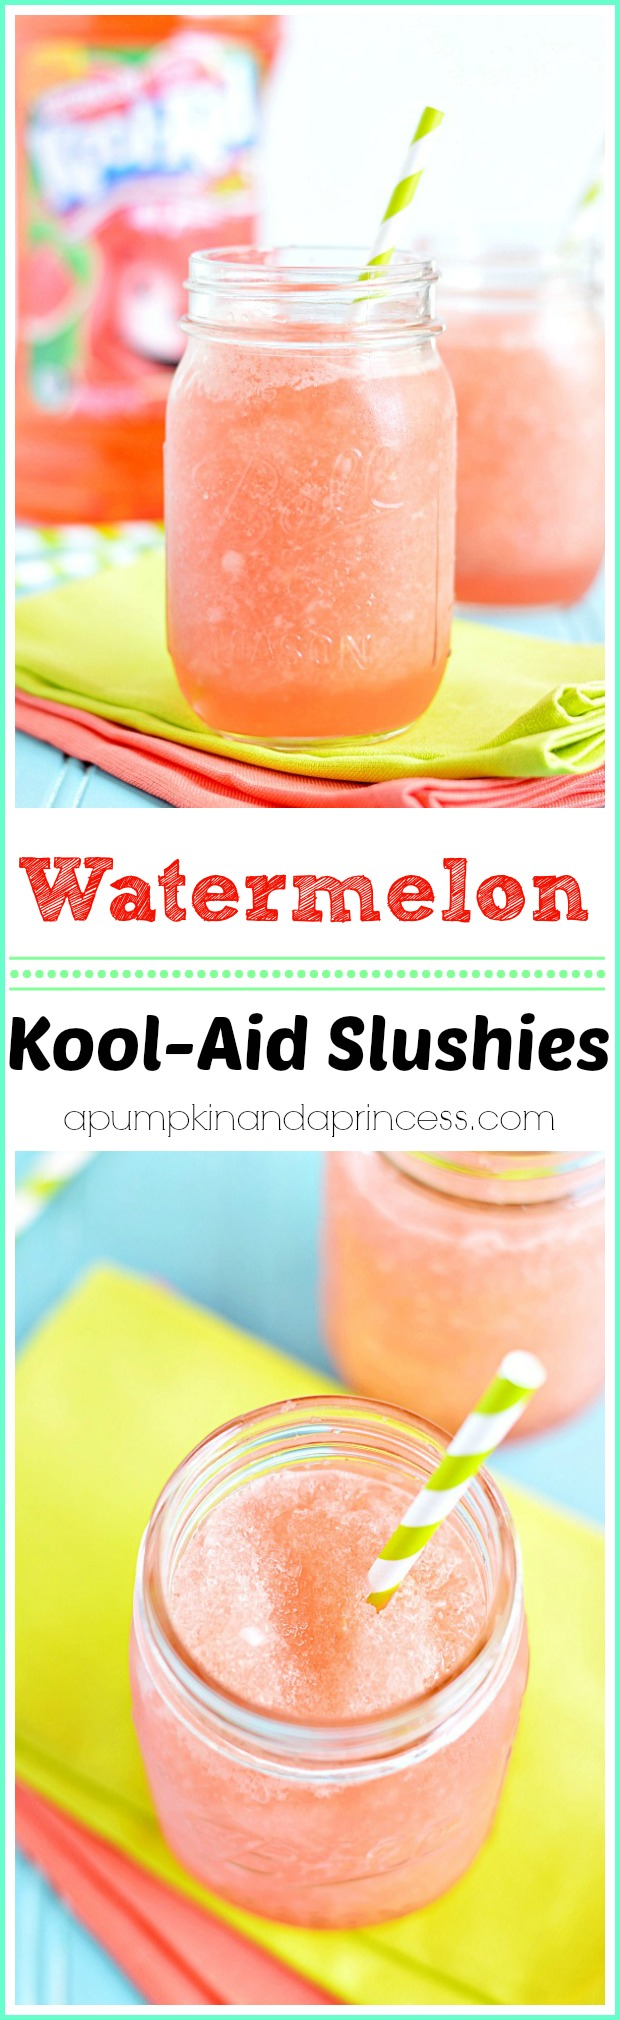 Kool-Aid Recipes